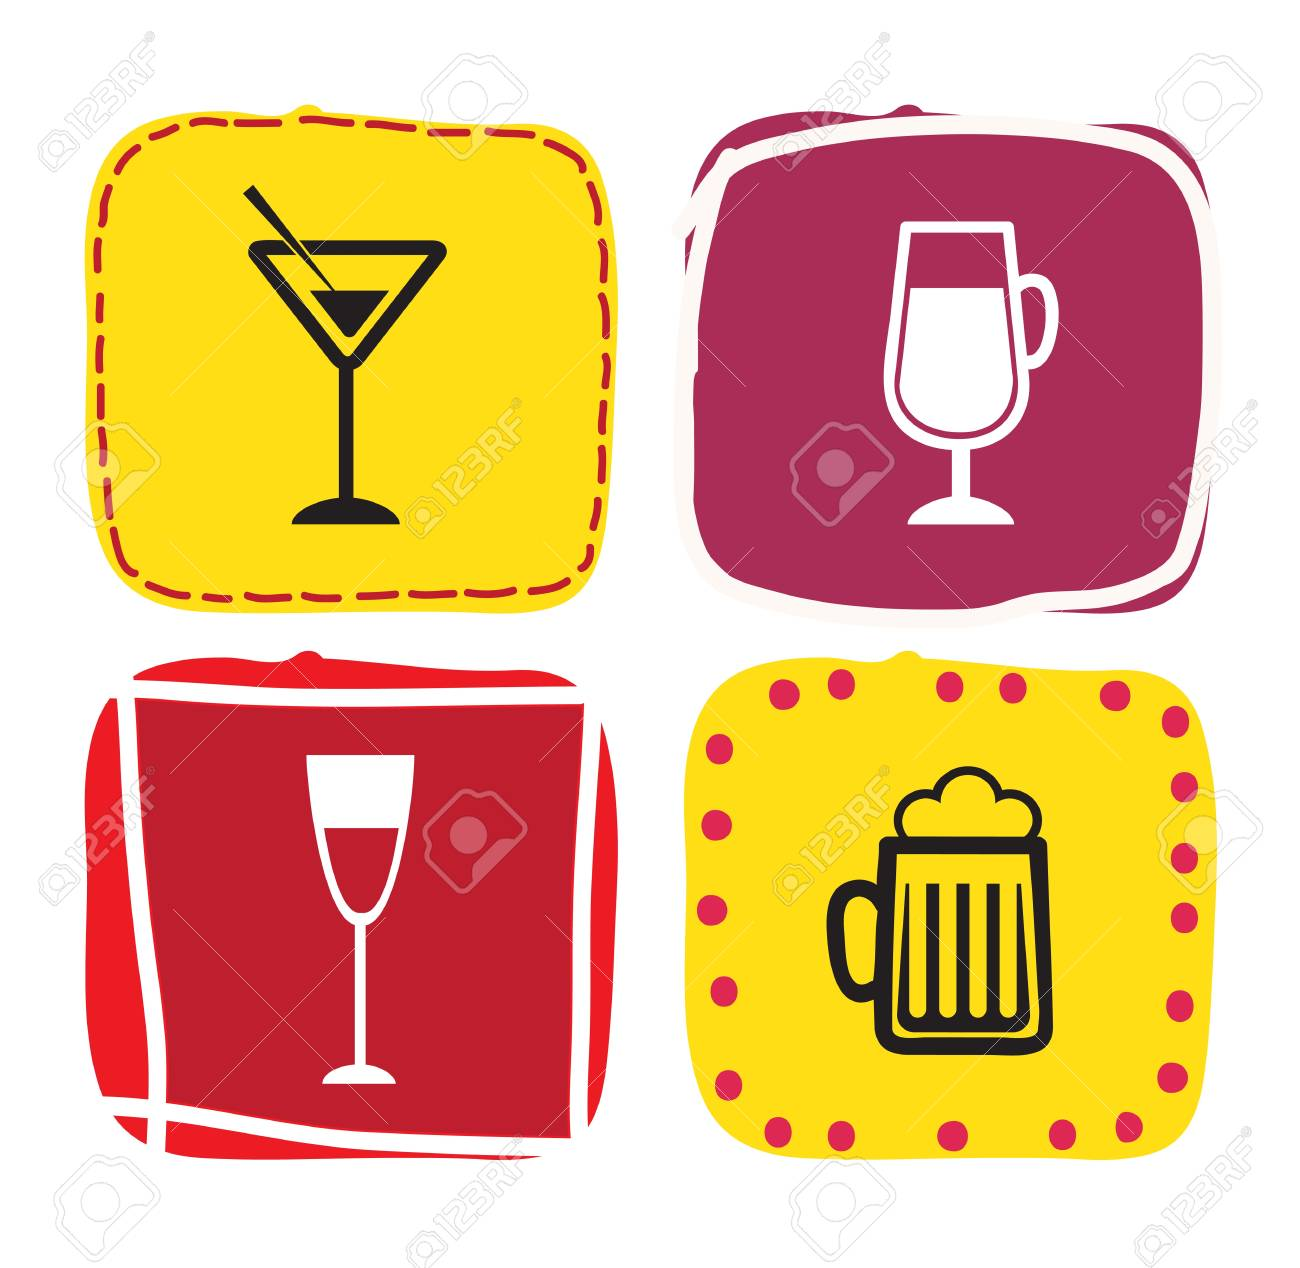 Cocktail over colors square over white background Stock Vector - 17978141